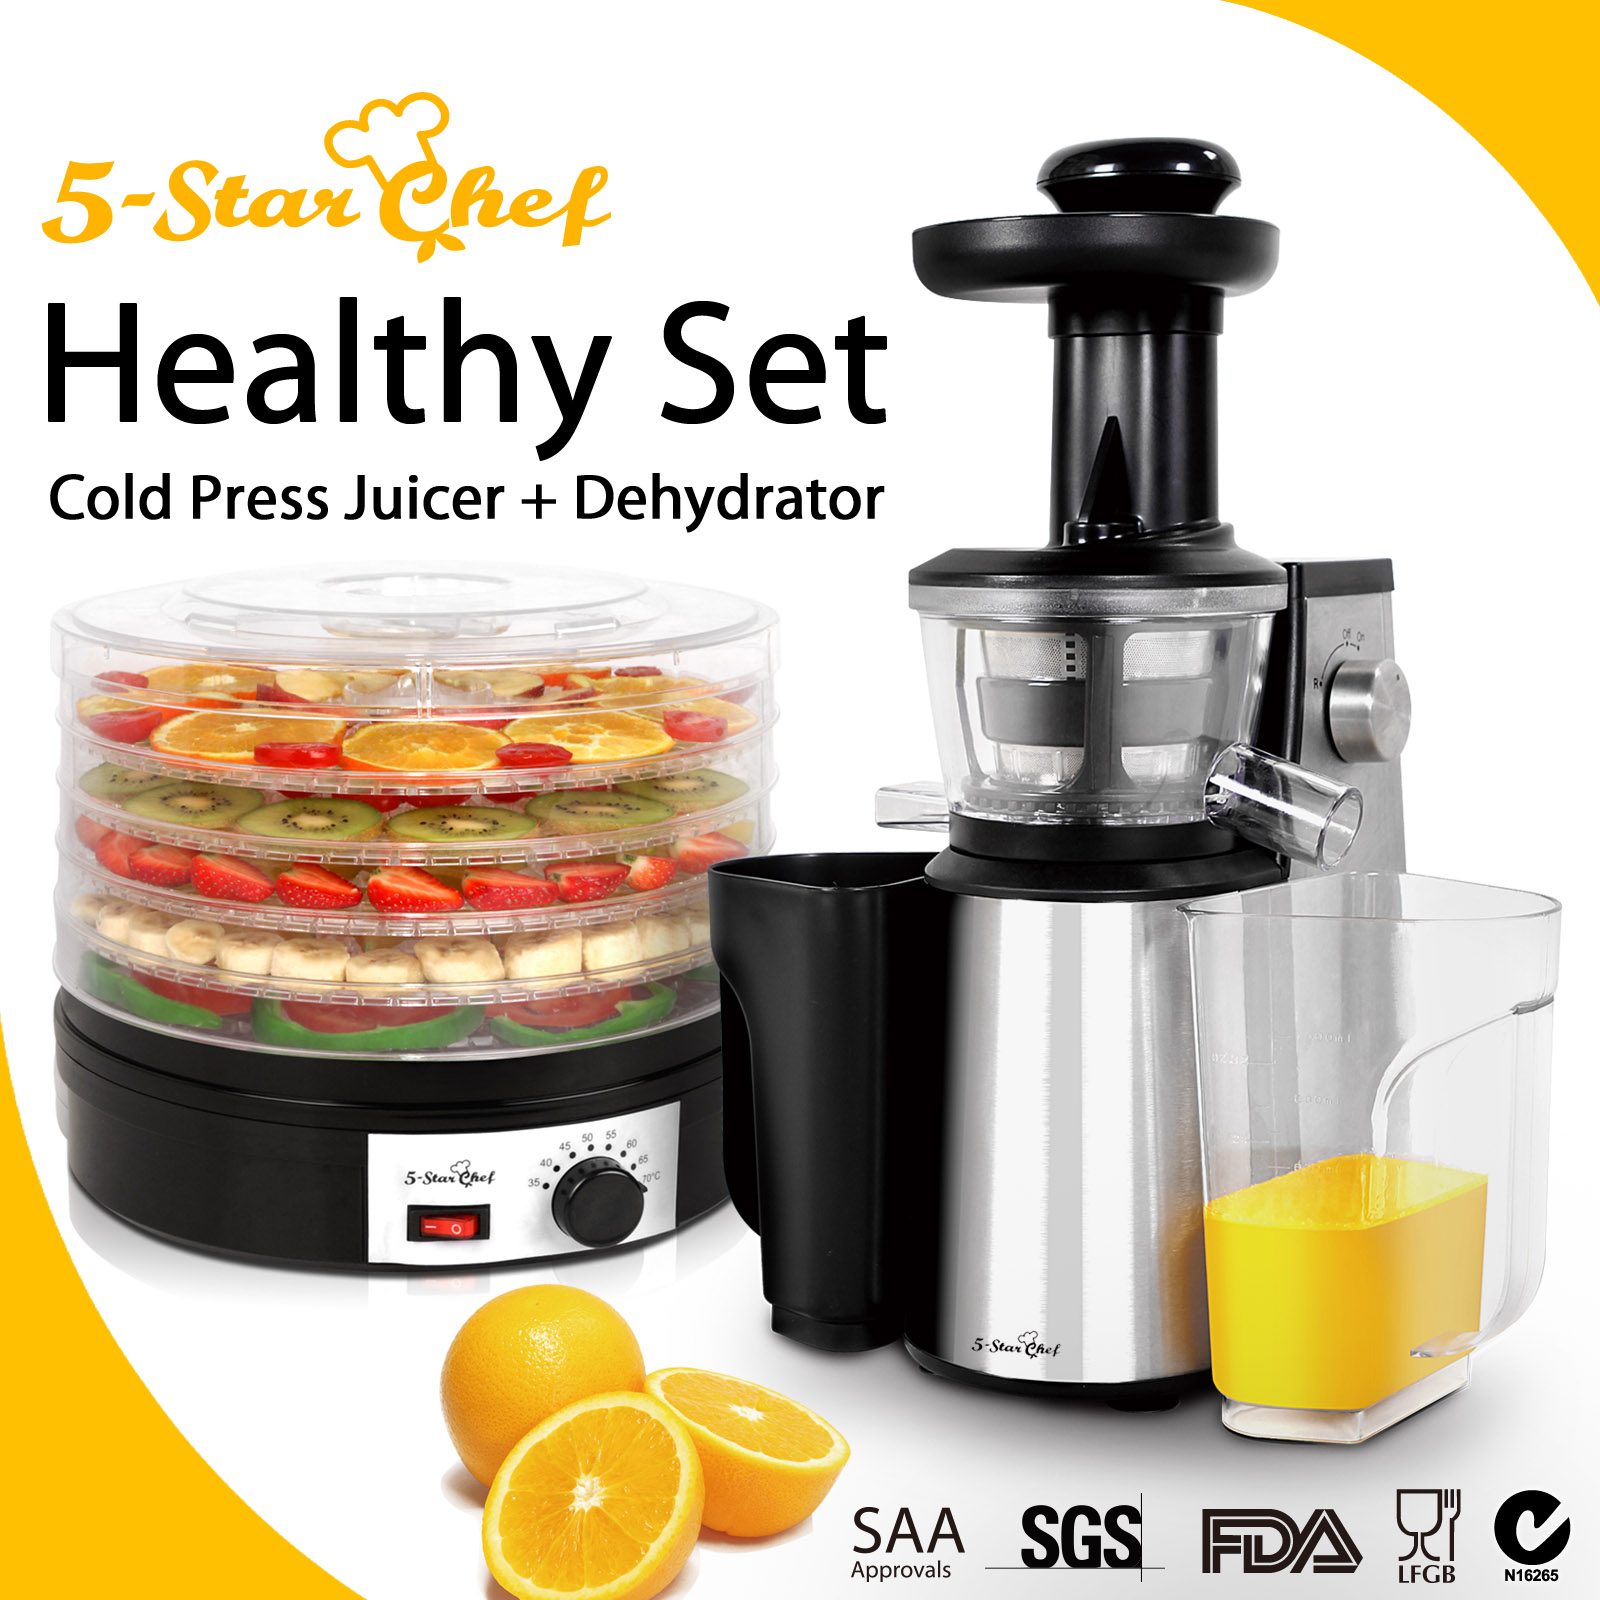 5 Star Chef Cold Press Slow Juicer Reviews : 5 Star Chef Cold Press Slow Juicer Food Dehydrator Fruit vegetable Dryer 5 Tray eBay